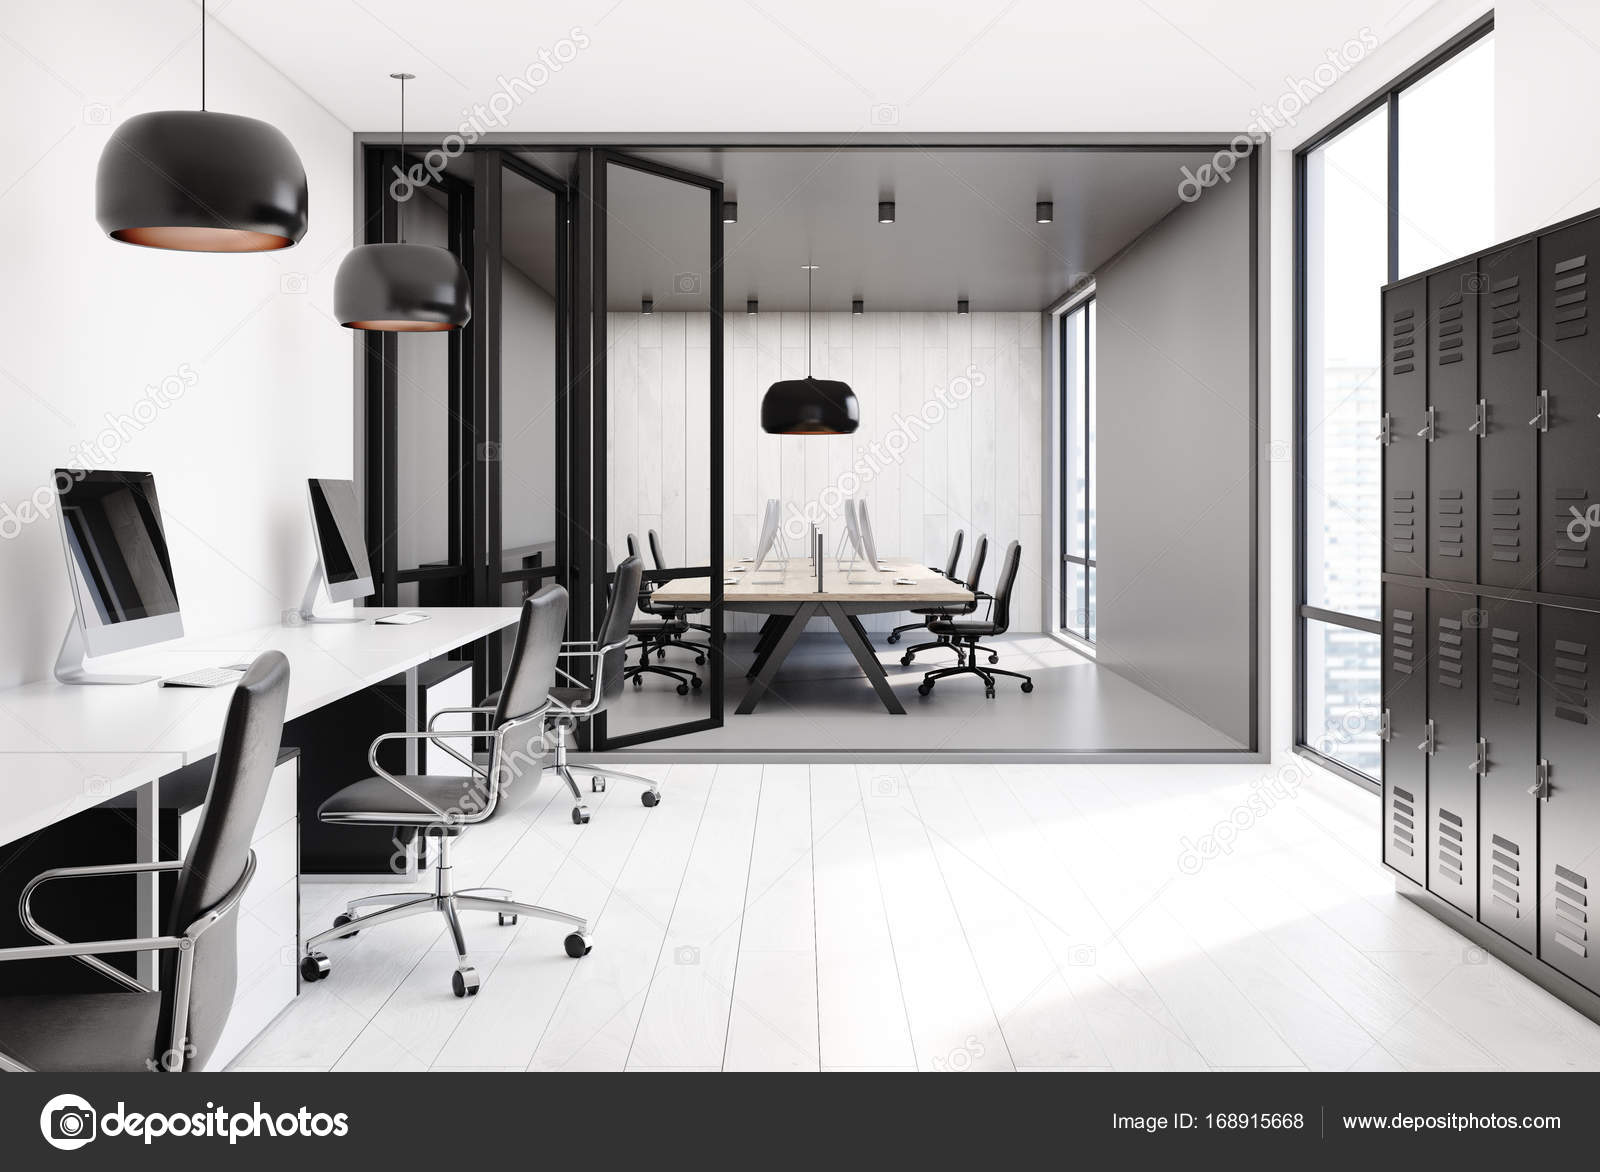 Open Space Office Interior With Gray And White Walls Black Lockers Rows Of Computer Tables On A Floor 3d Rendering Mock Up Photo By